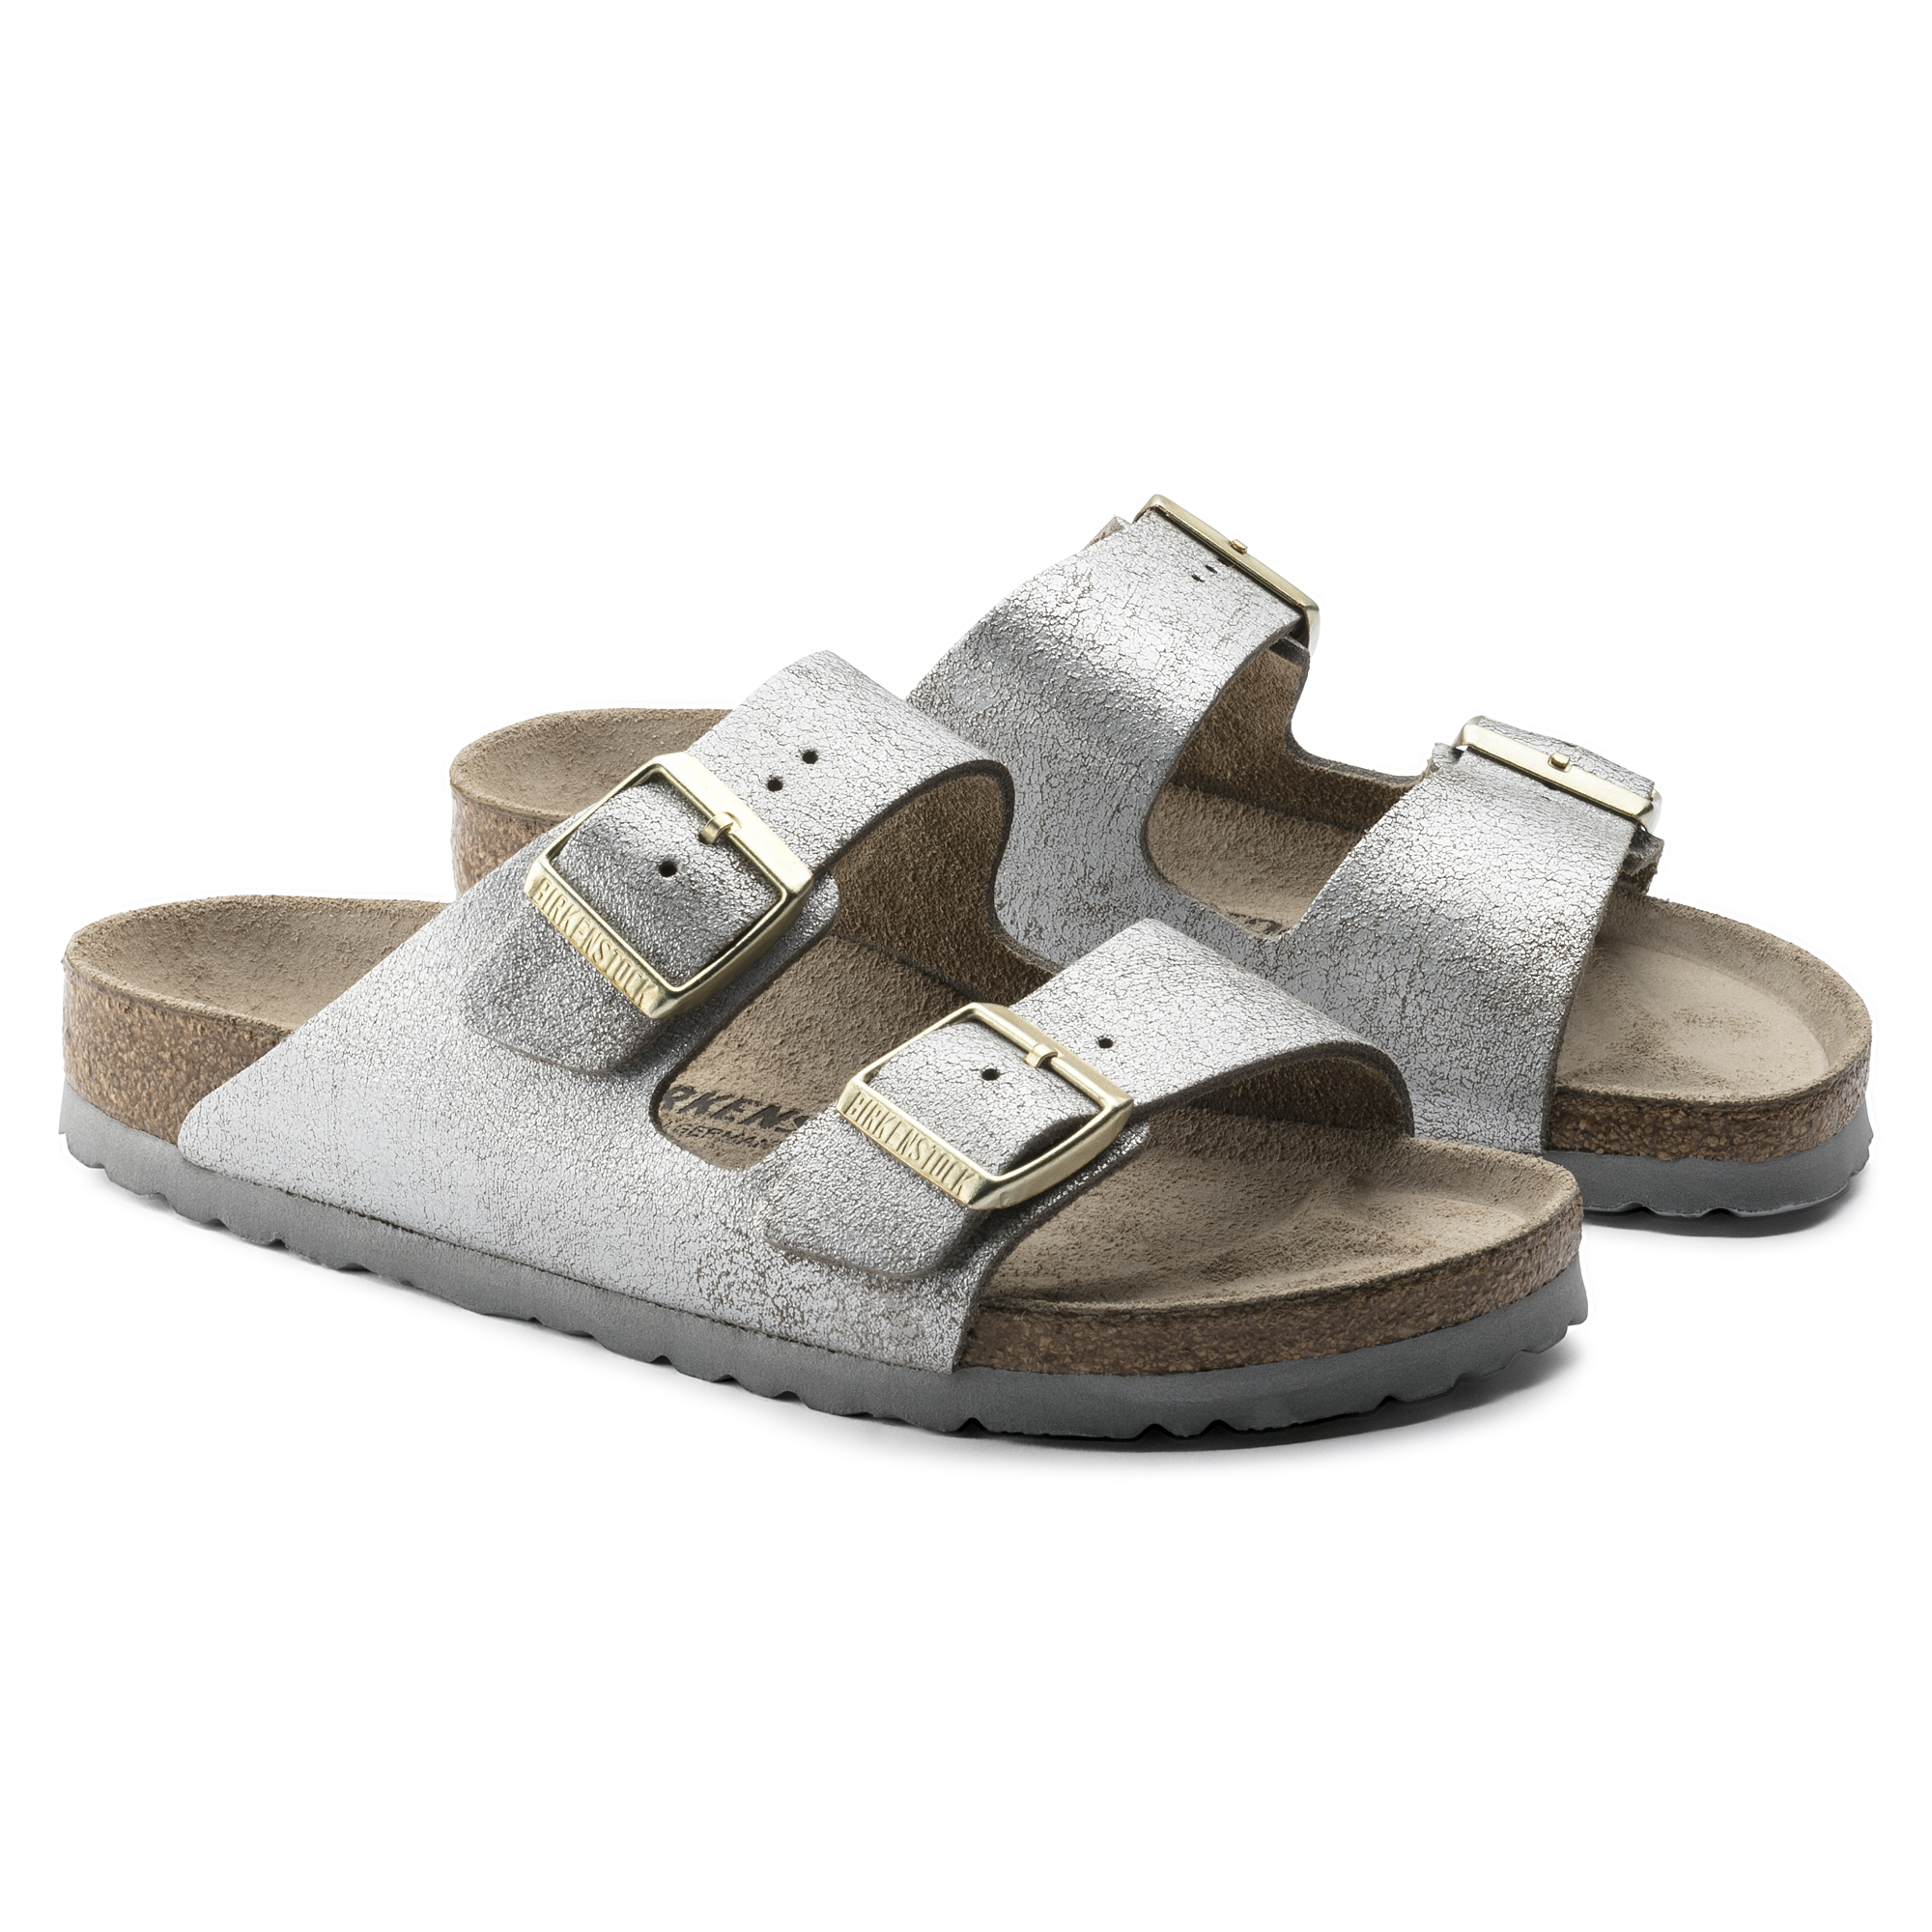 be0665ac4ef98 ... Arizona Suede Leather Washed Metallic Blue Silver ...